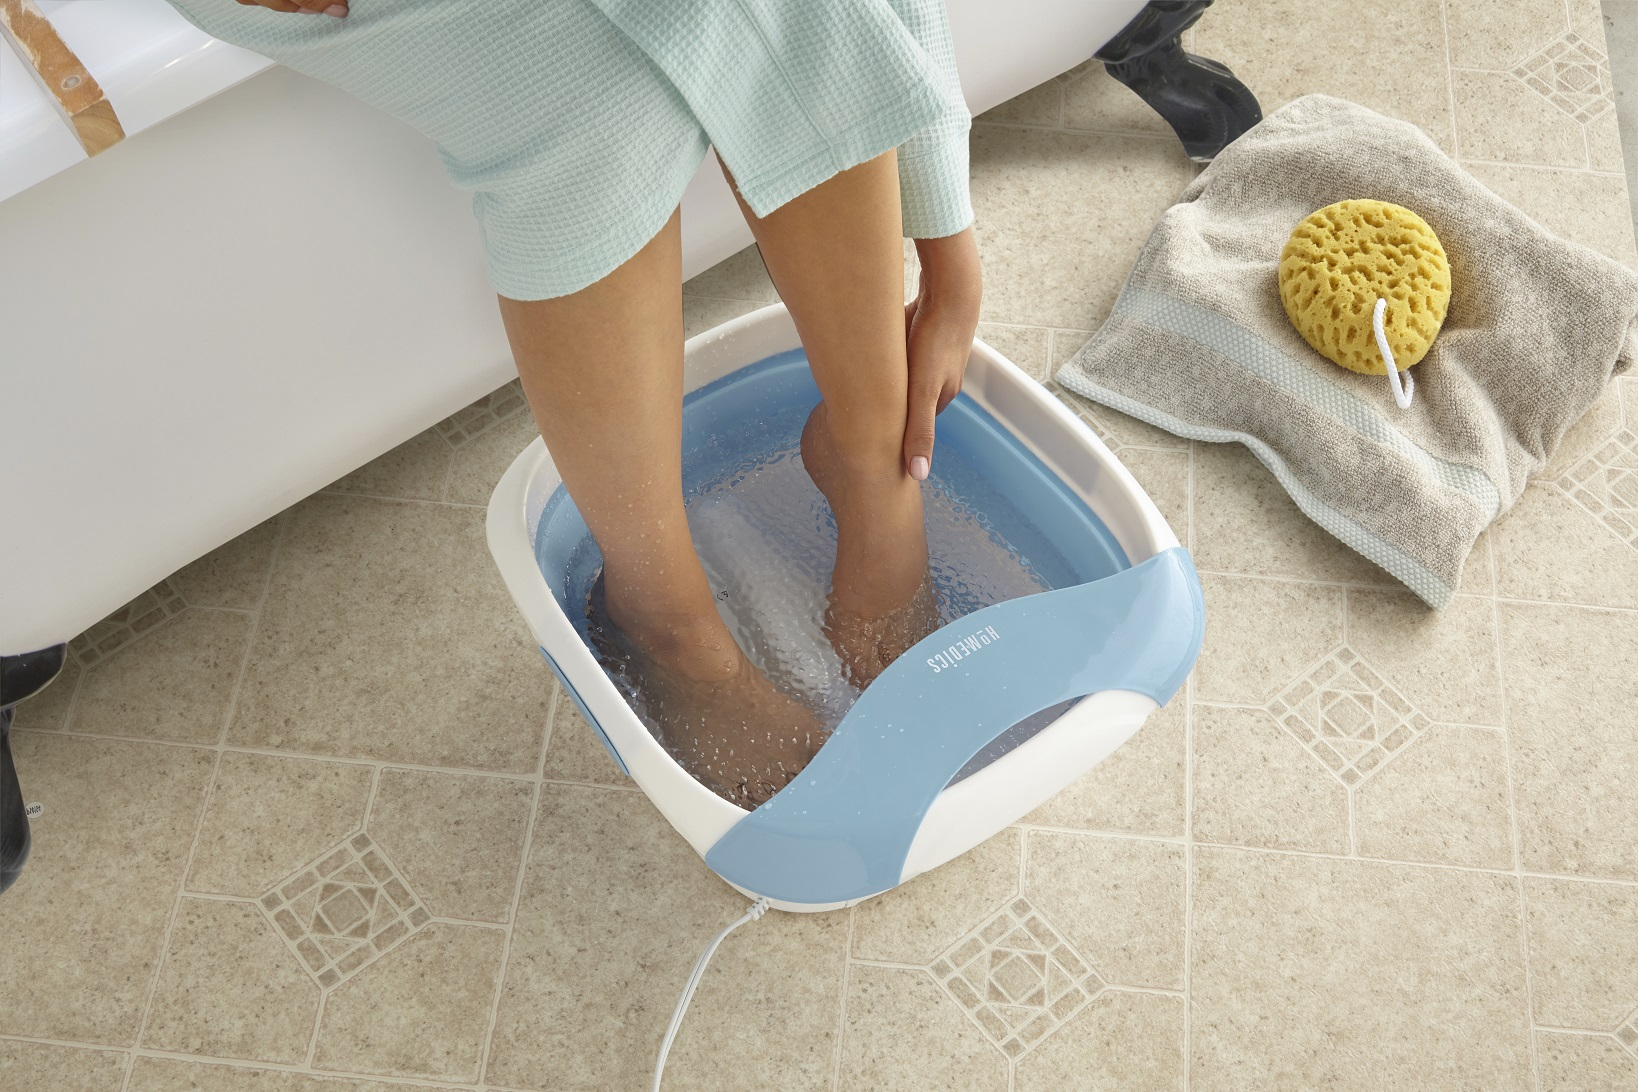 Homedics Foldaway Luxury Foot Spa Massage Bubble Foot